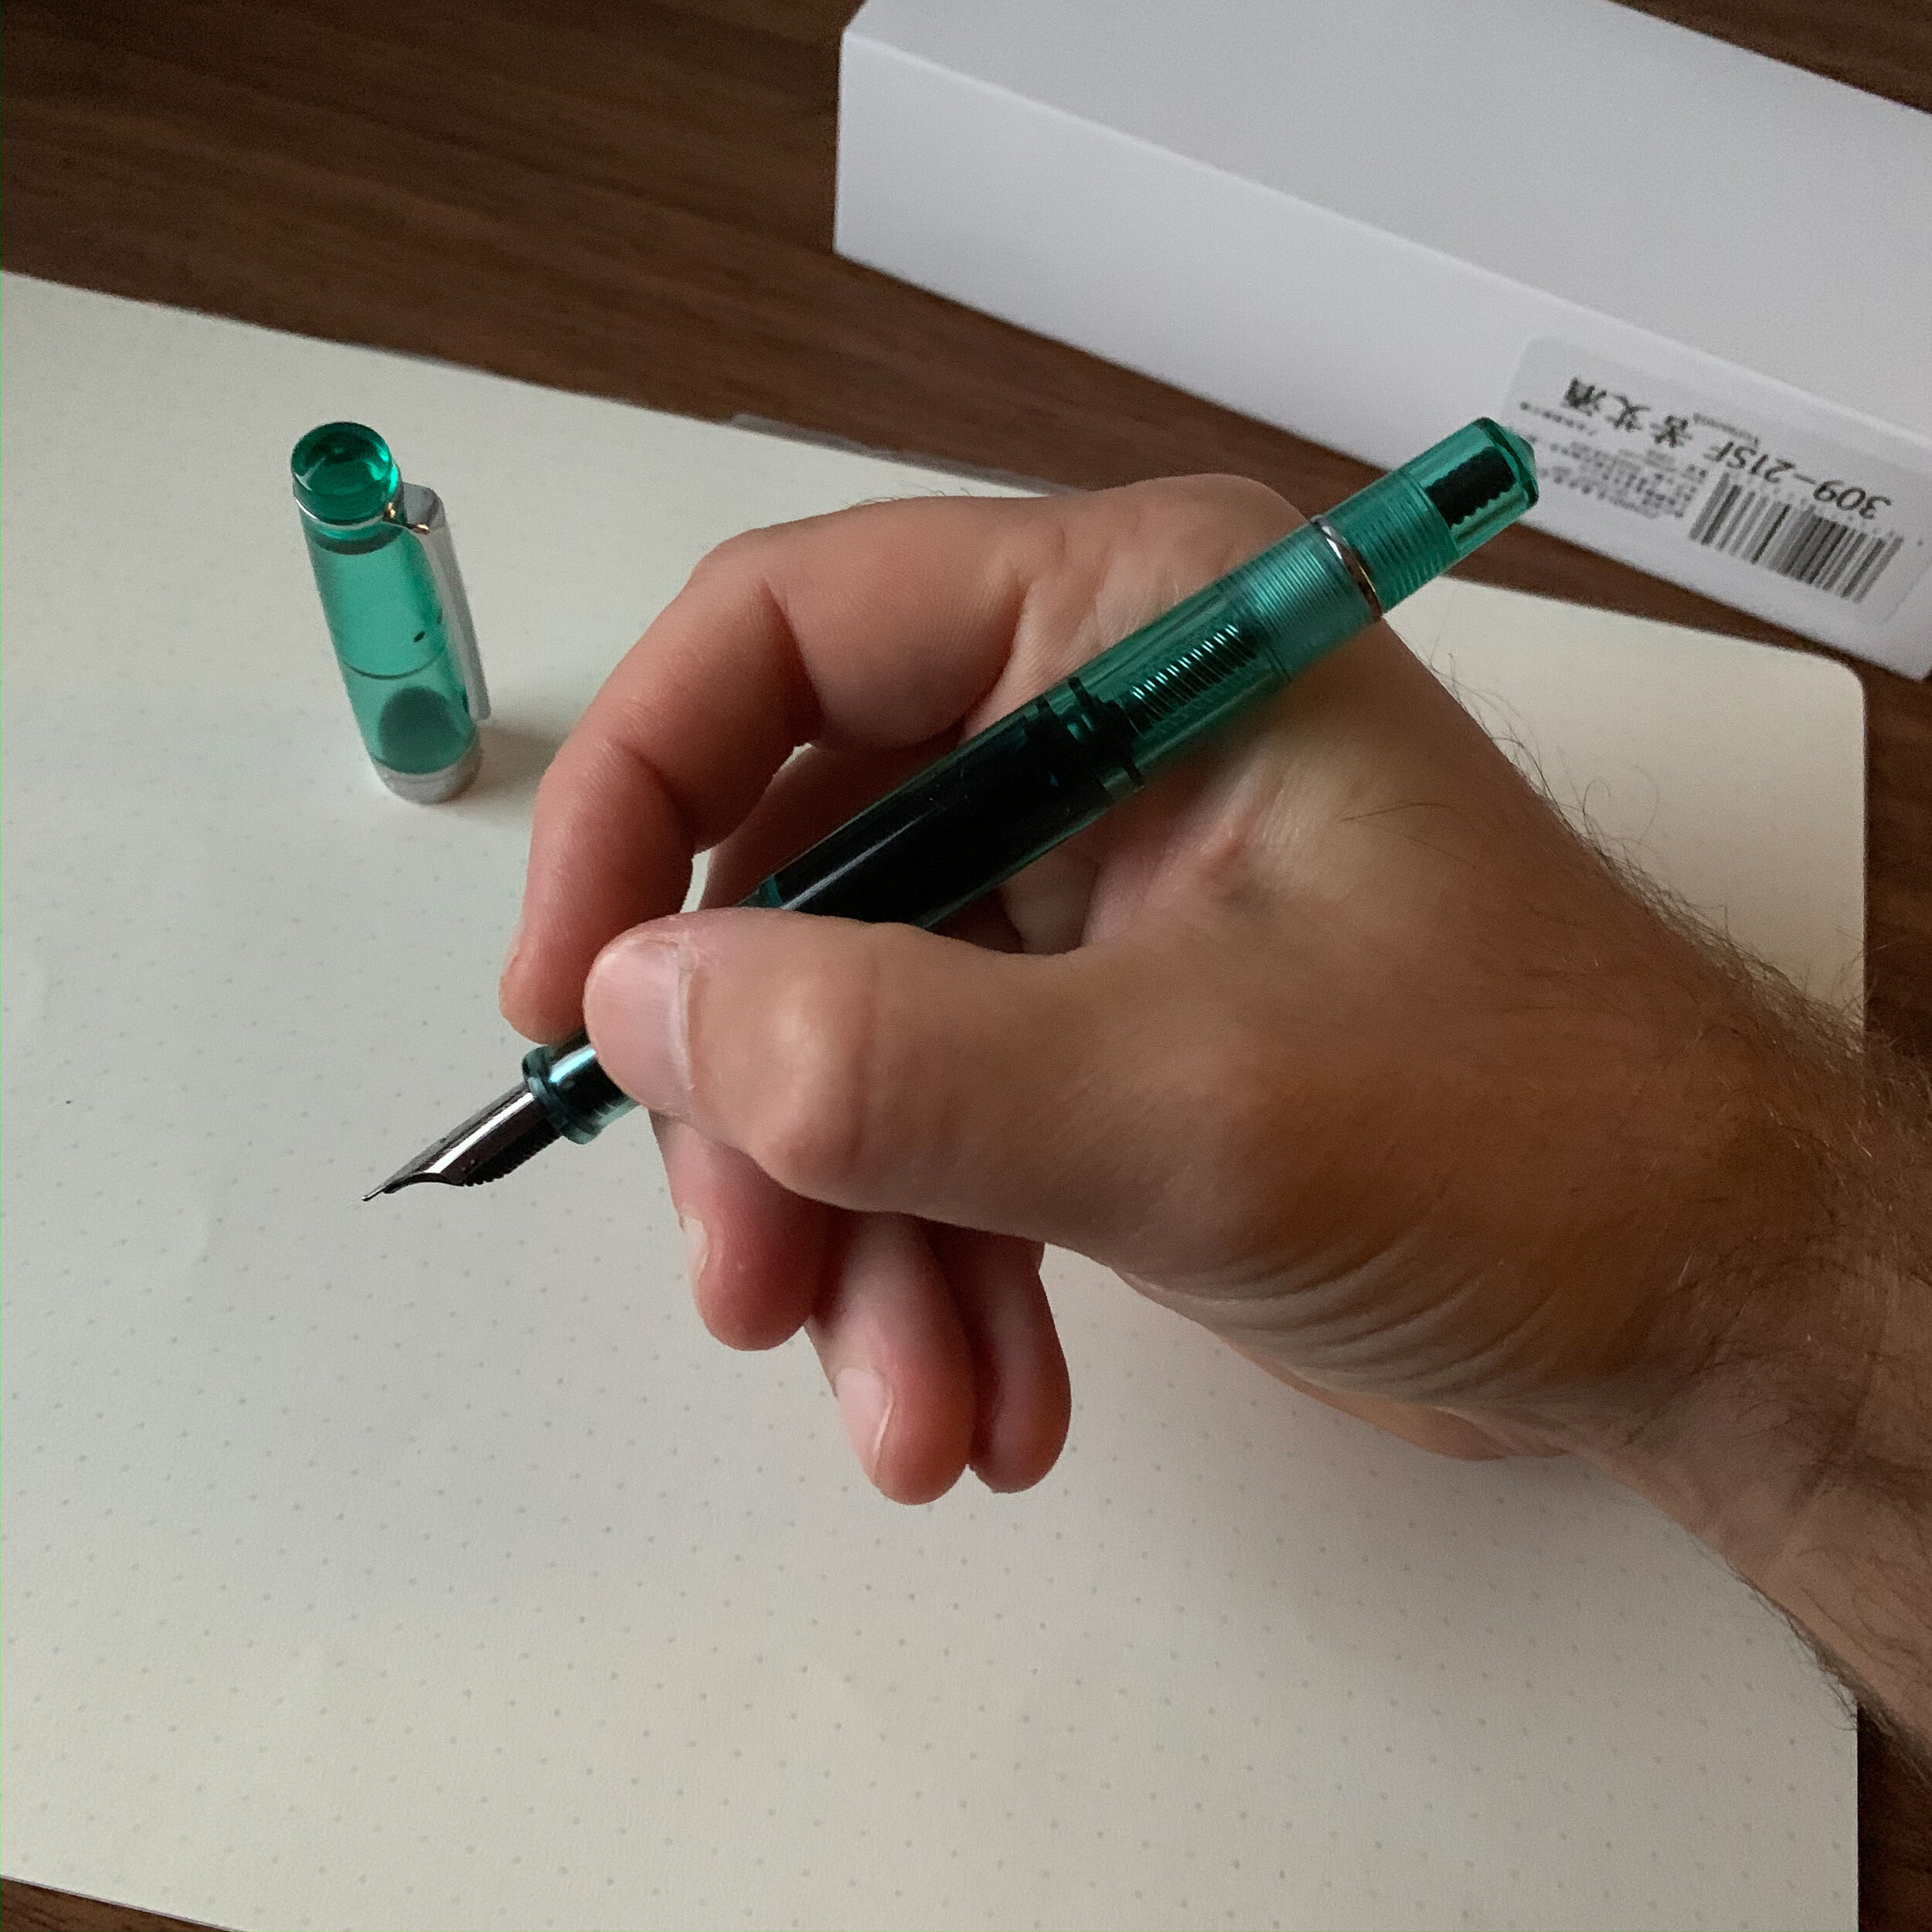 PenBBS Model 309 Unosted